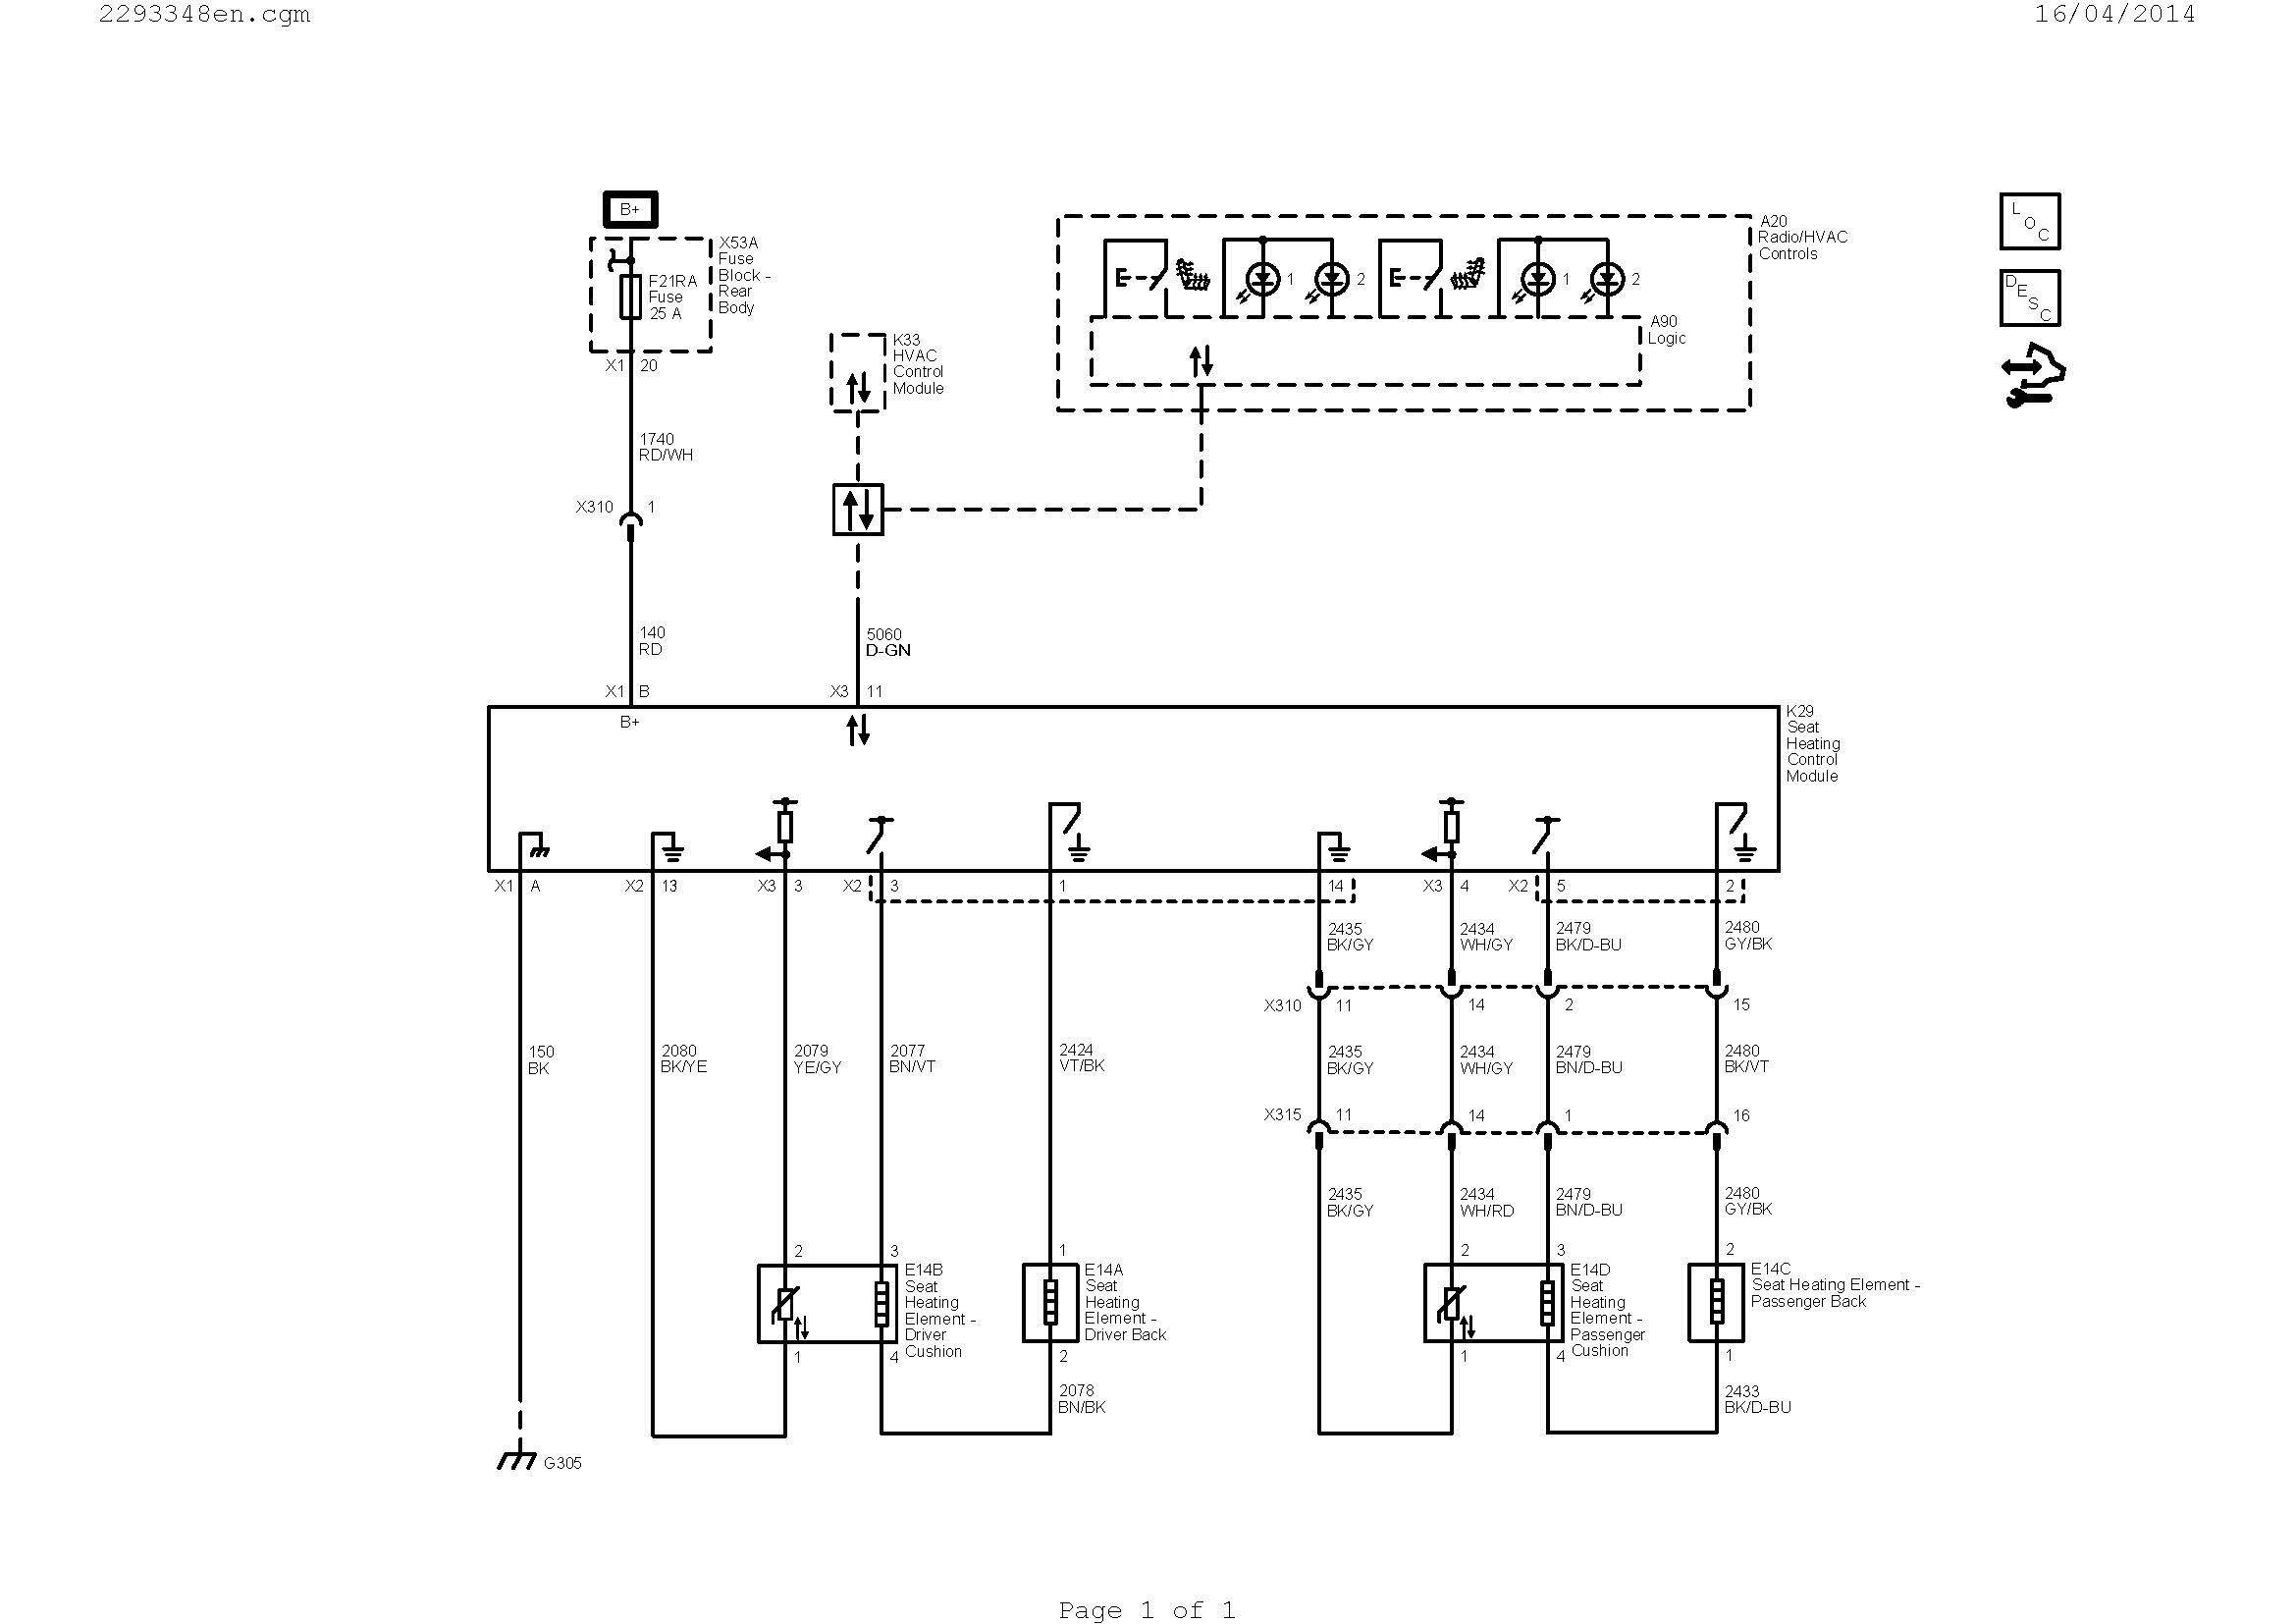 Wiring Diagram  32 Understanding Hvac Wiring Diagram